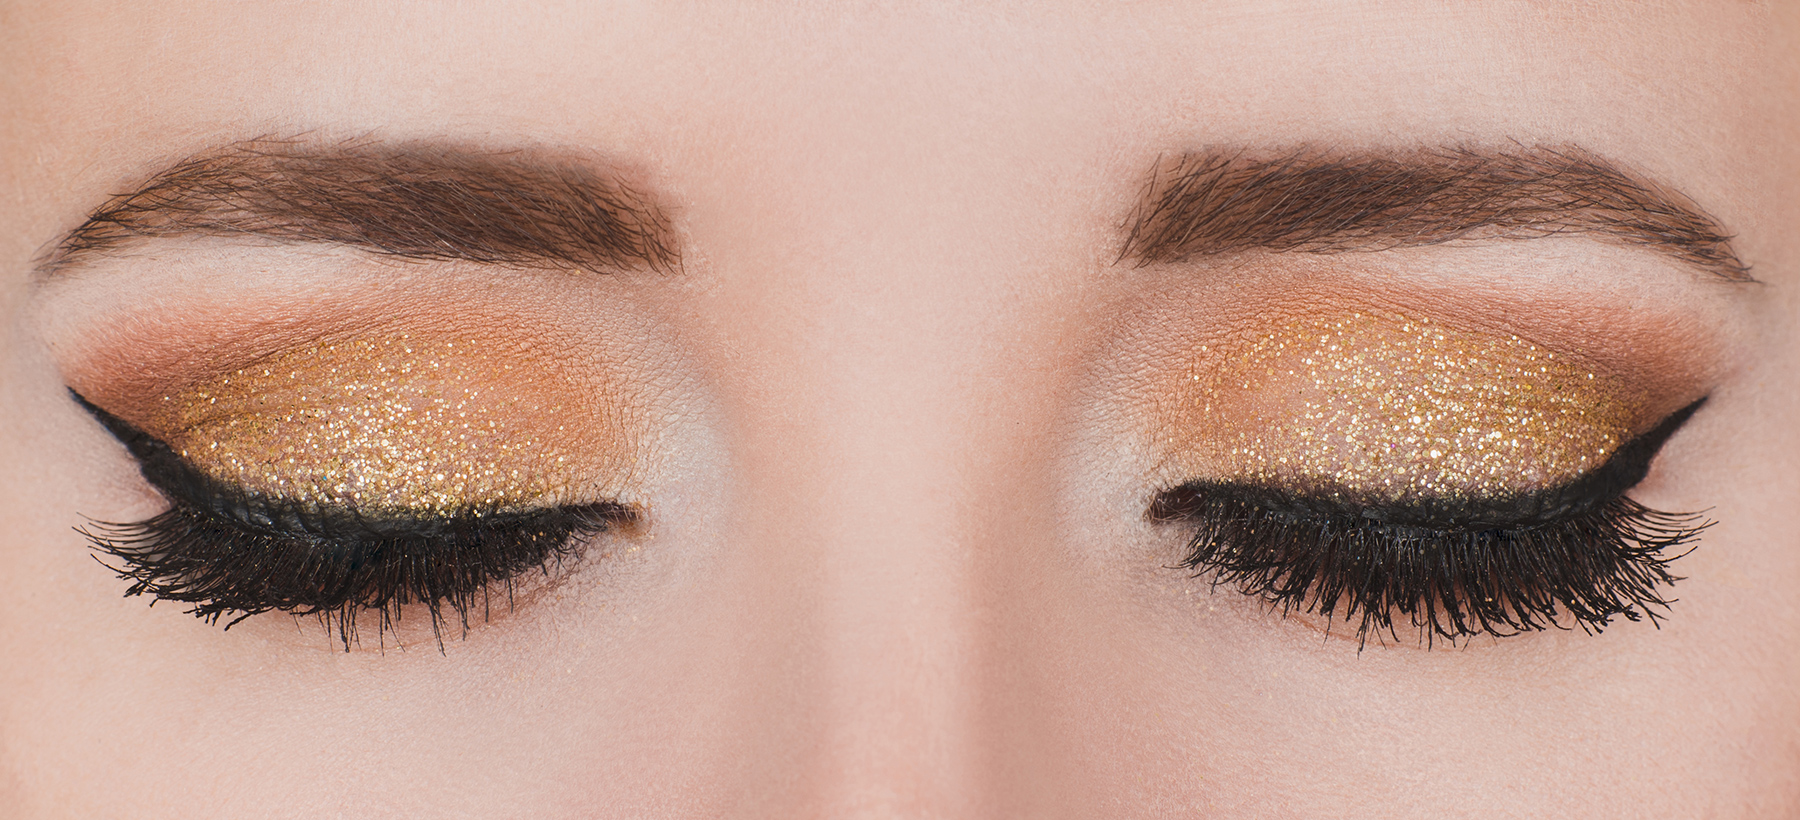 Makeup with gold glitter.